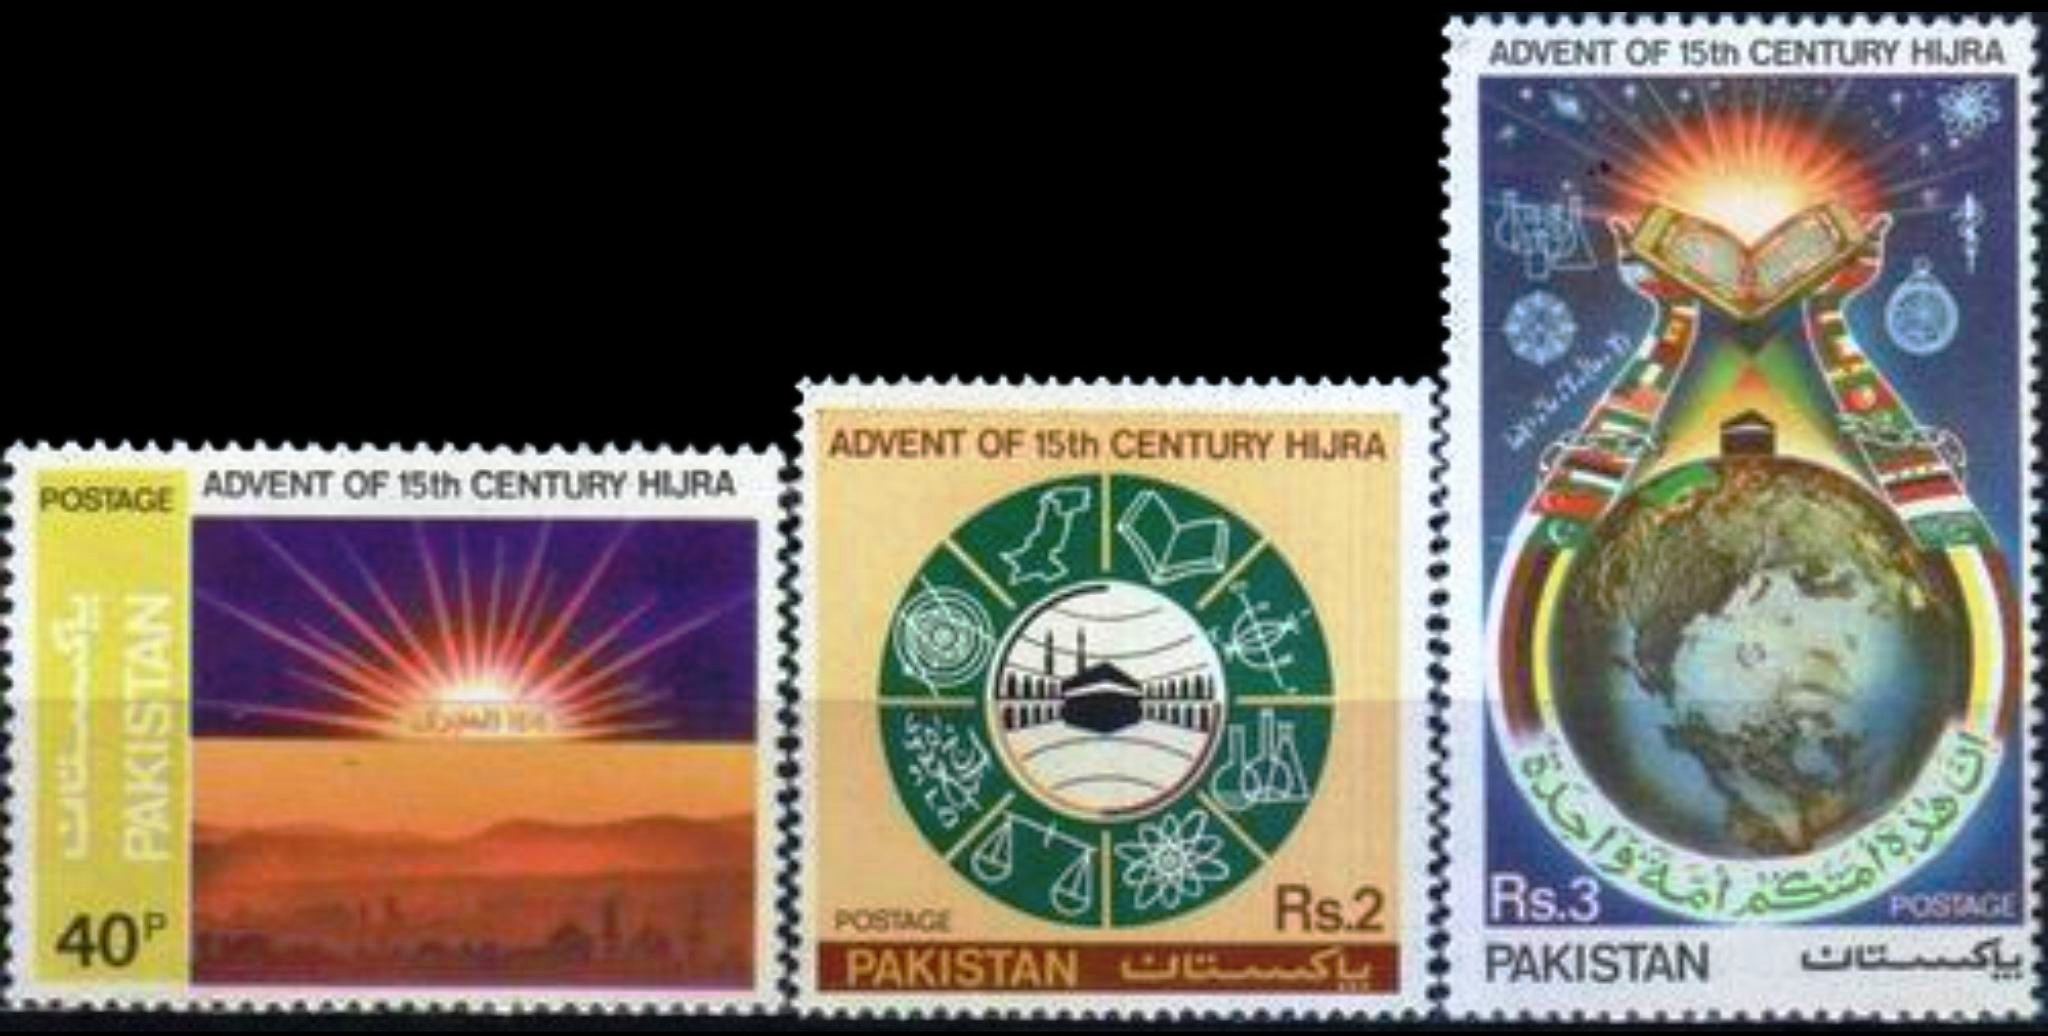 Pakistan Stamps 1980 Advent of 15th Century Hijra